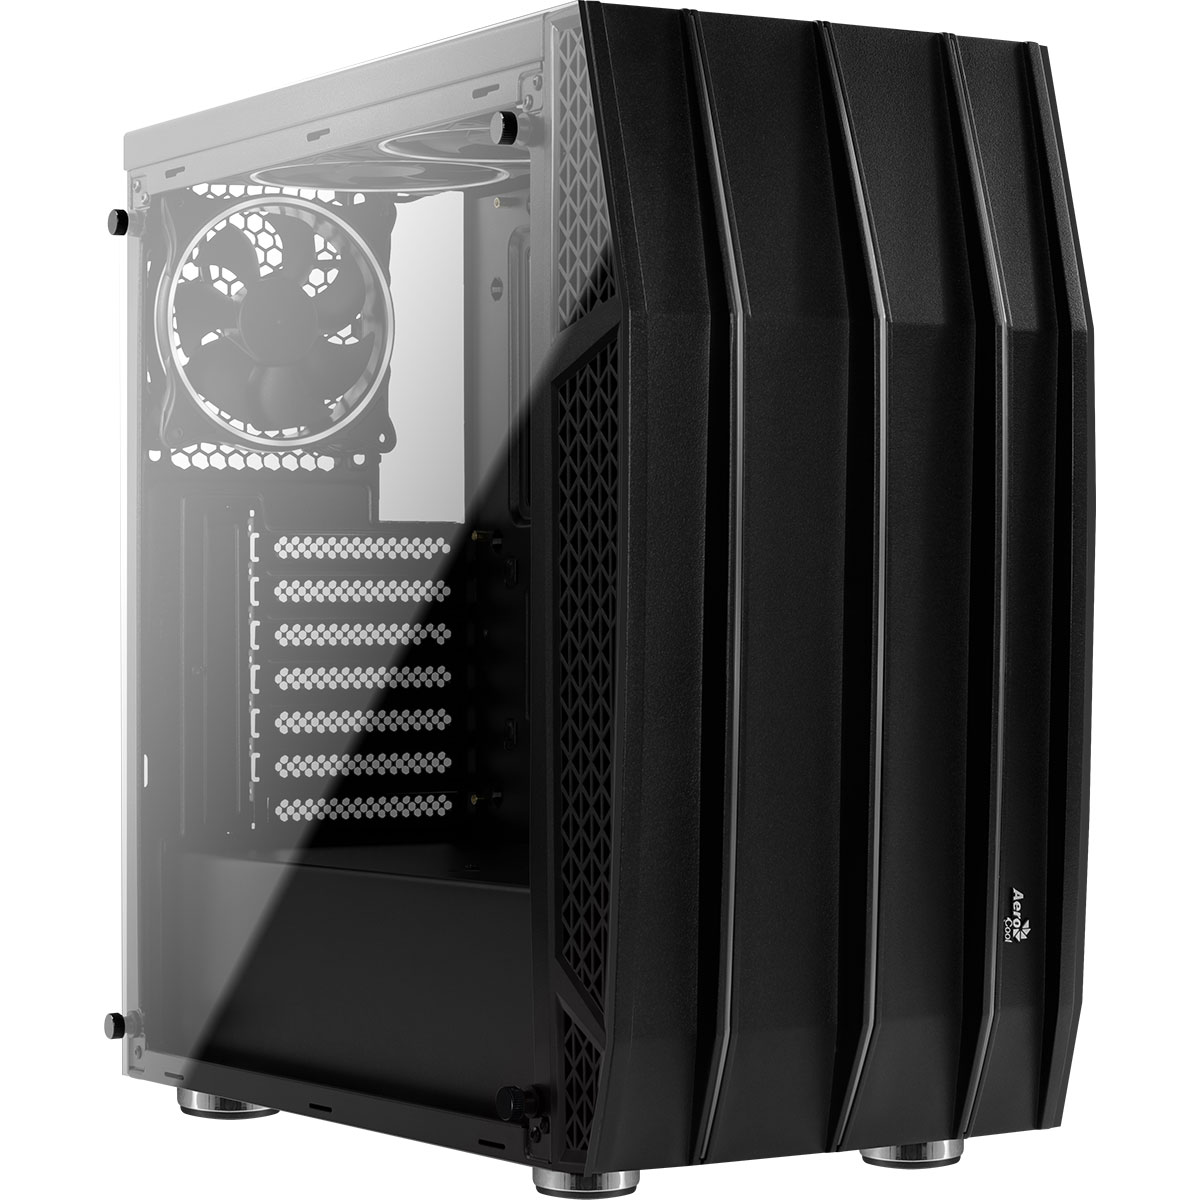 Details about G6 Custom GAMING PC RGB Intel Core i5 9600k 4 6GHz Nvidia RTX  2060 Computer